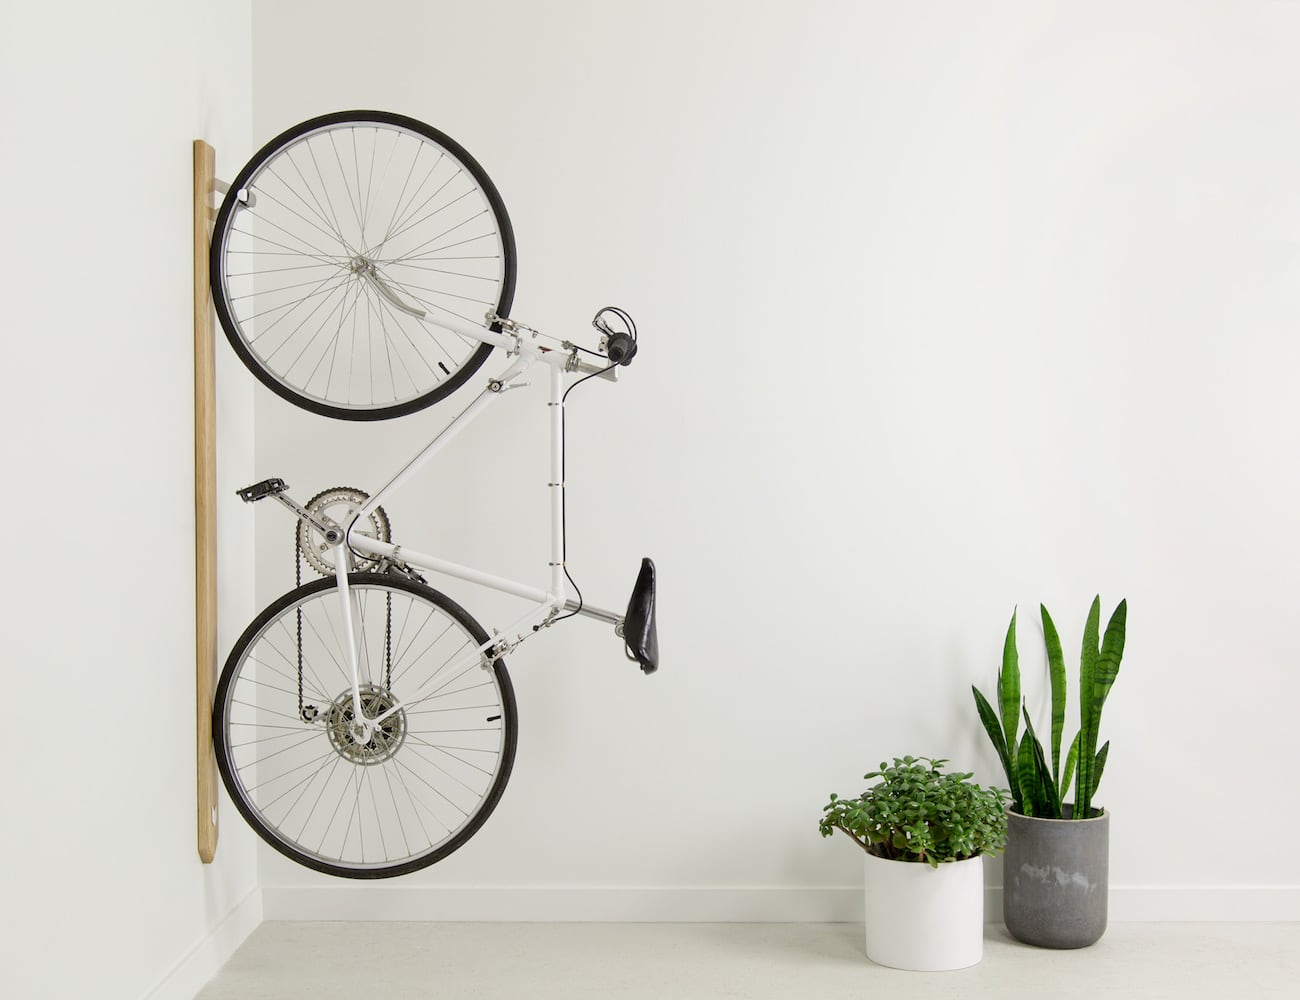 ARTIFOX RACK Vertical Bike Storage lets you stylishly store your bike at home